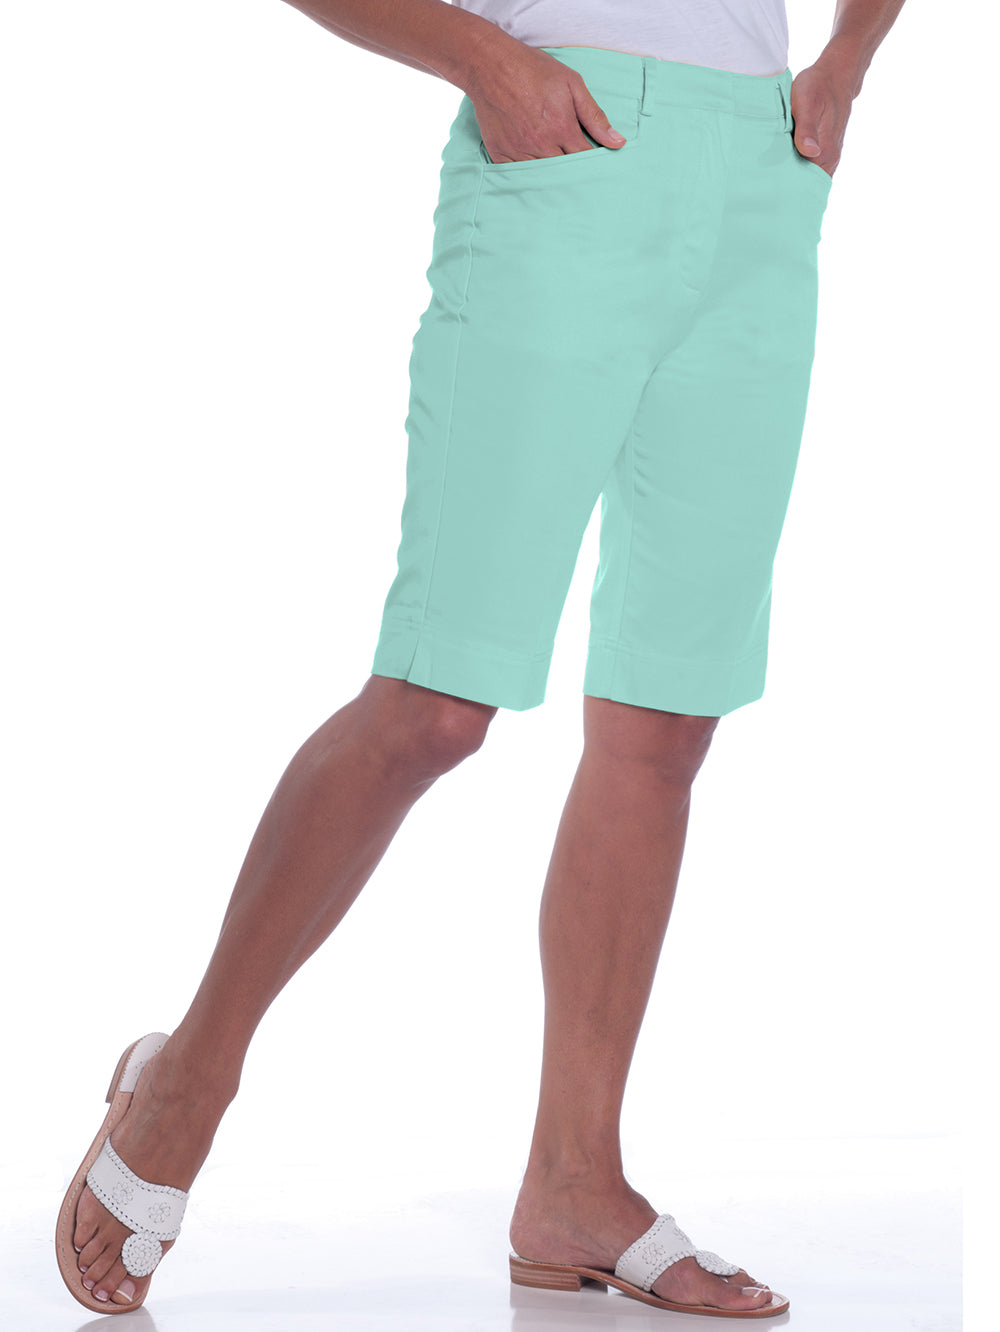 L-Pocket Bermuda Shorts</br>Sea Breeze 092